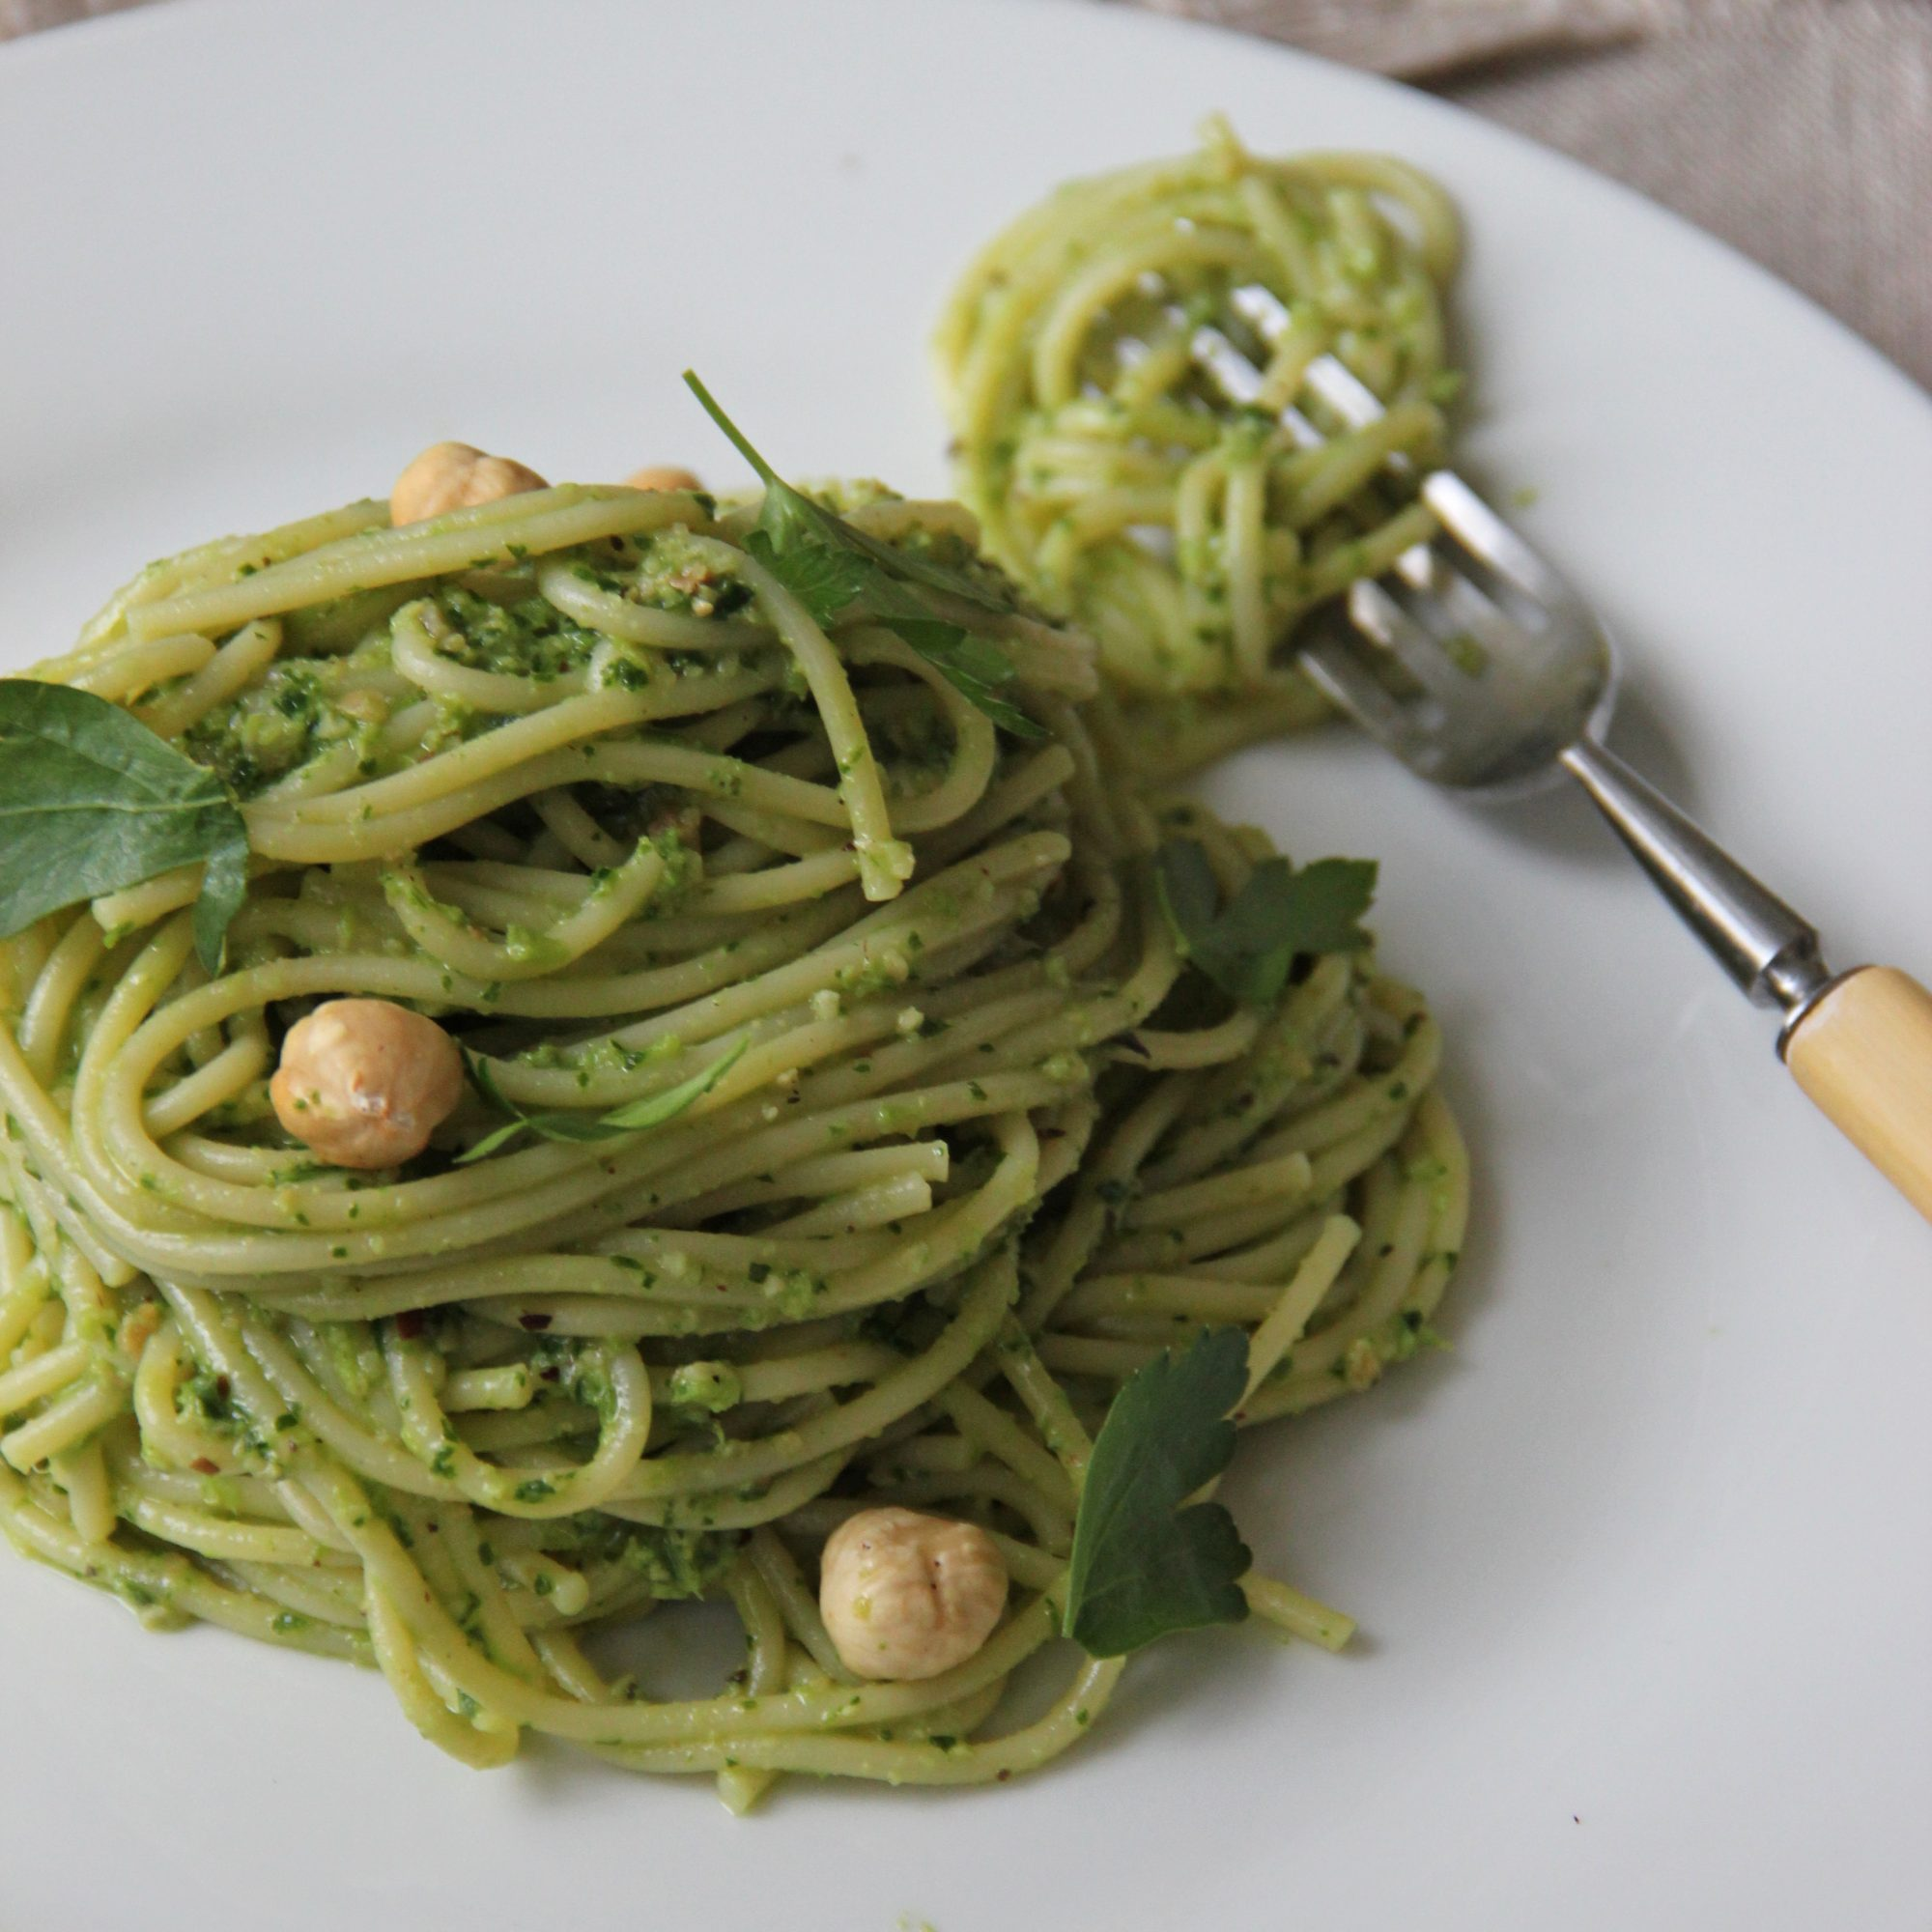 HD-201405-r-parsley-hazelnut-pesto-with-spaghetti.jpg